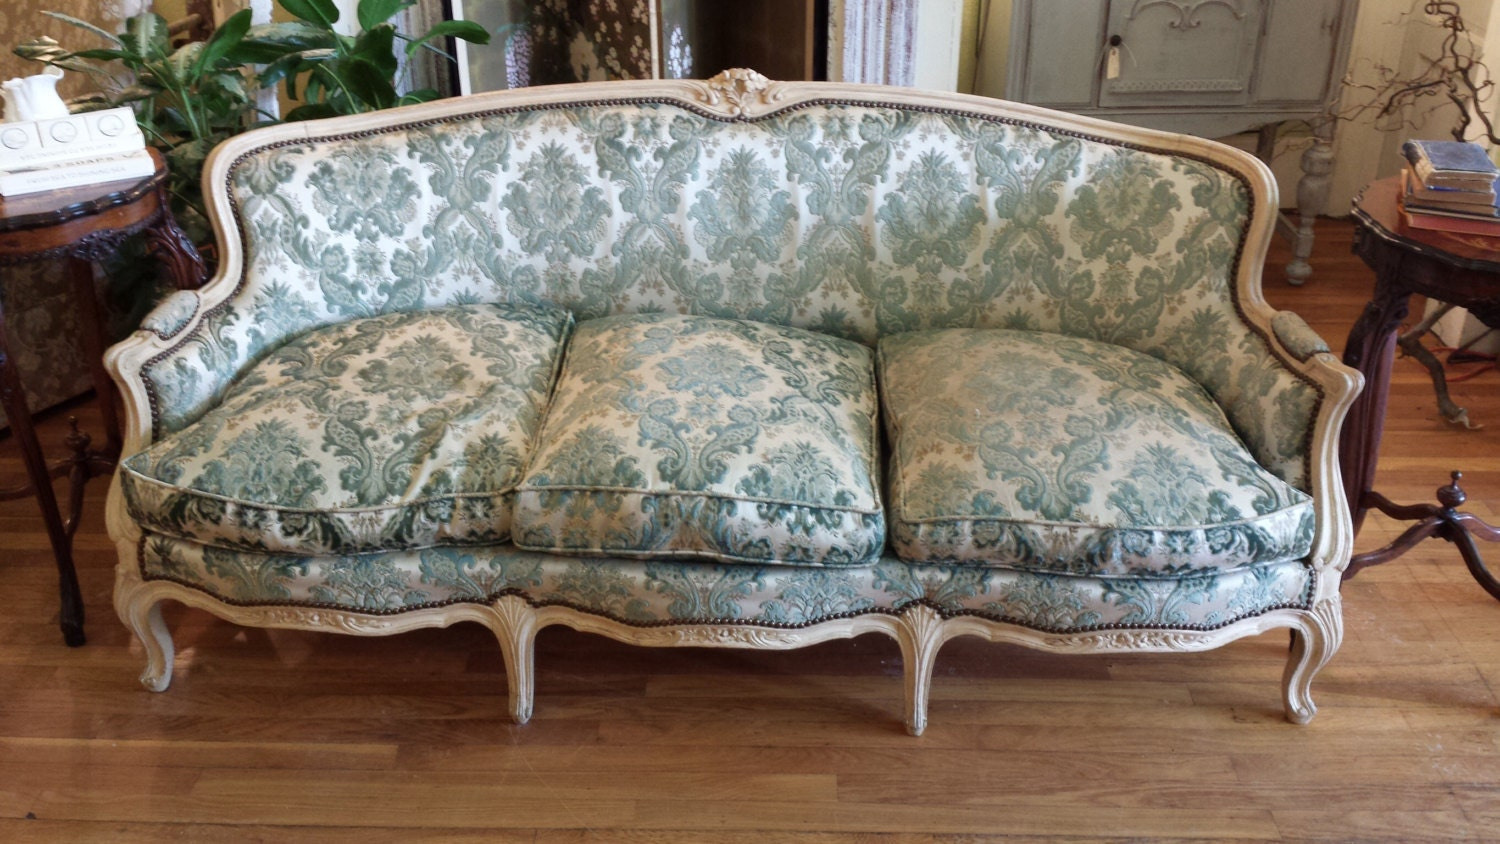 Antique French Provincial Sofa